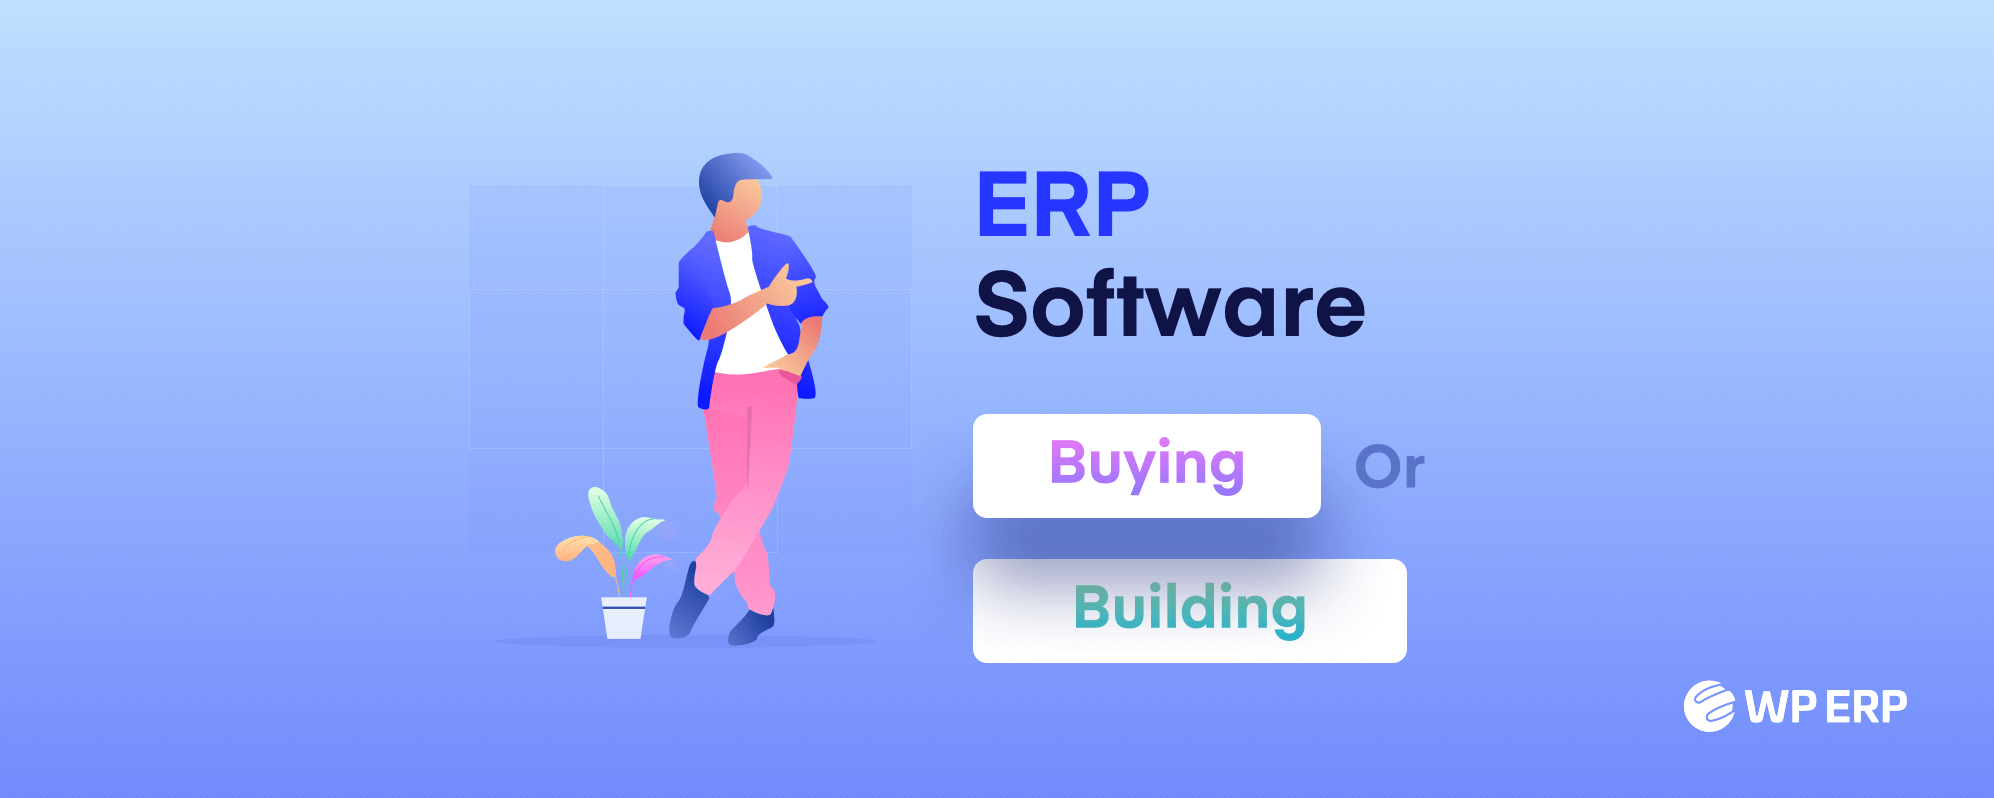 ERP software Building or buying